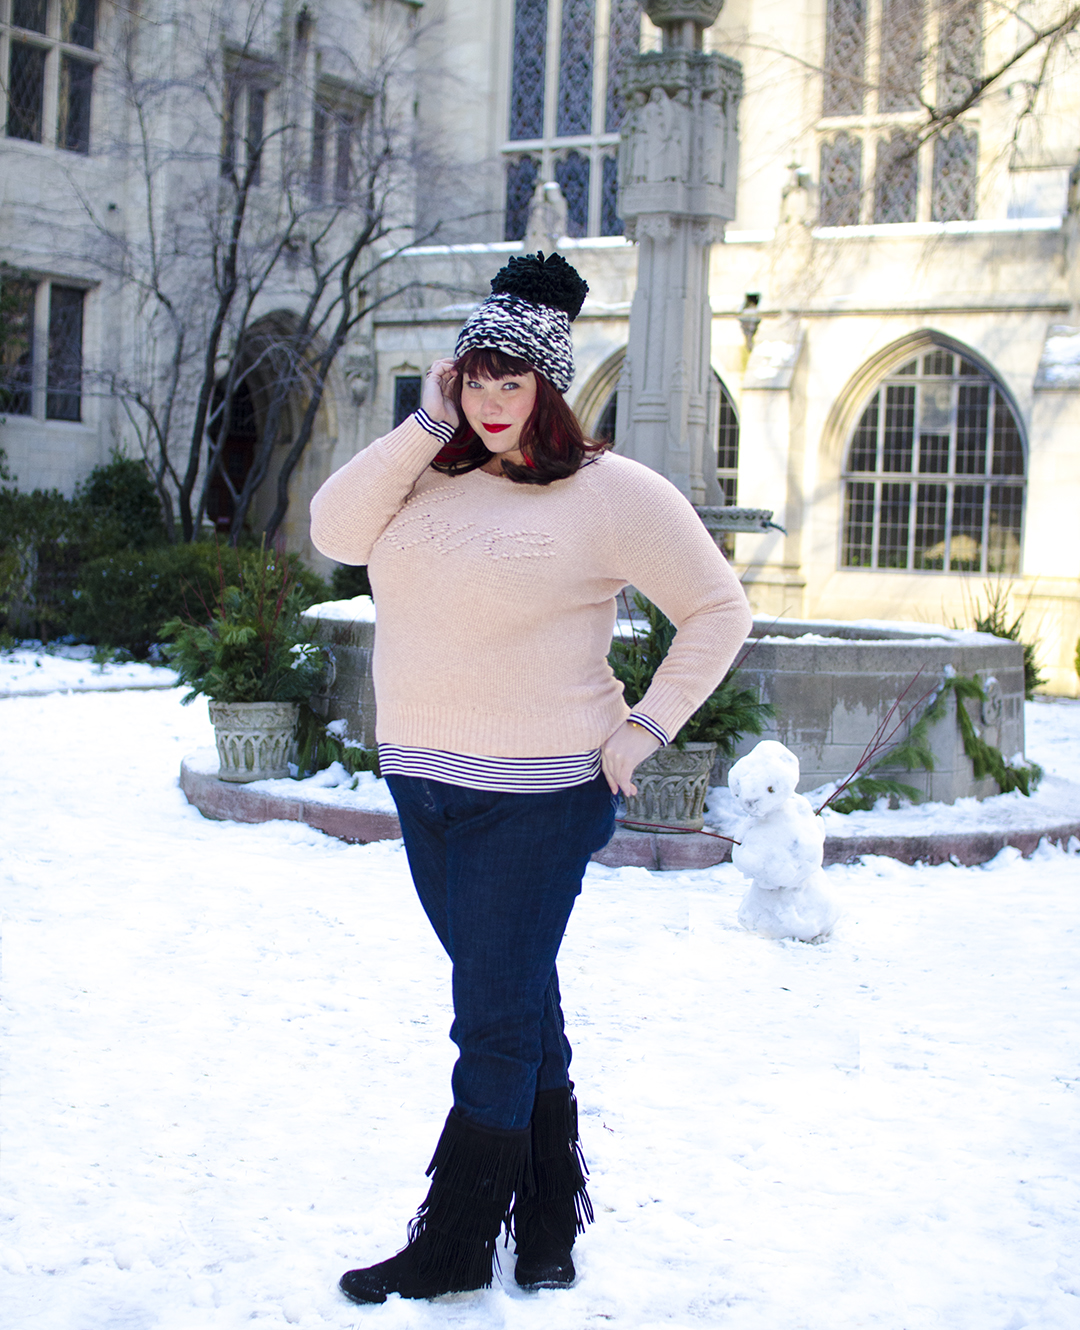 Plus Size Model in Casual Outfit in Snow